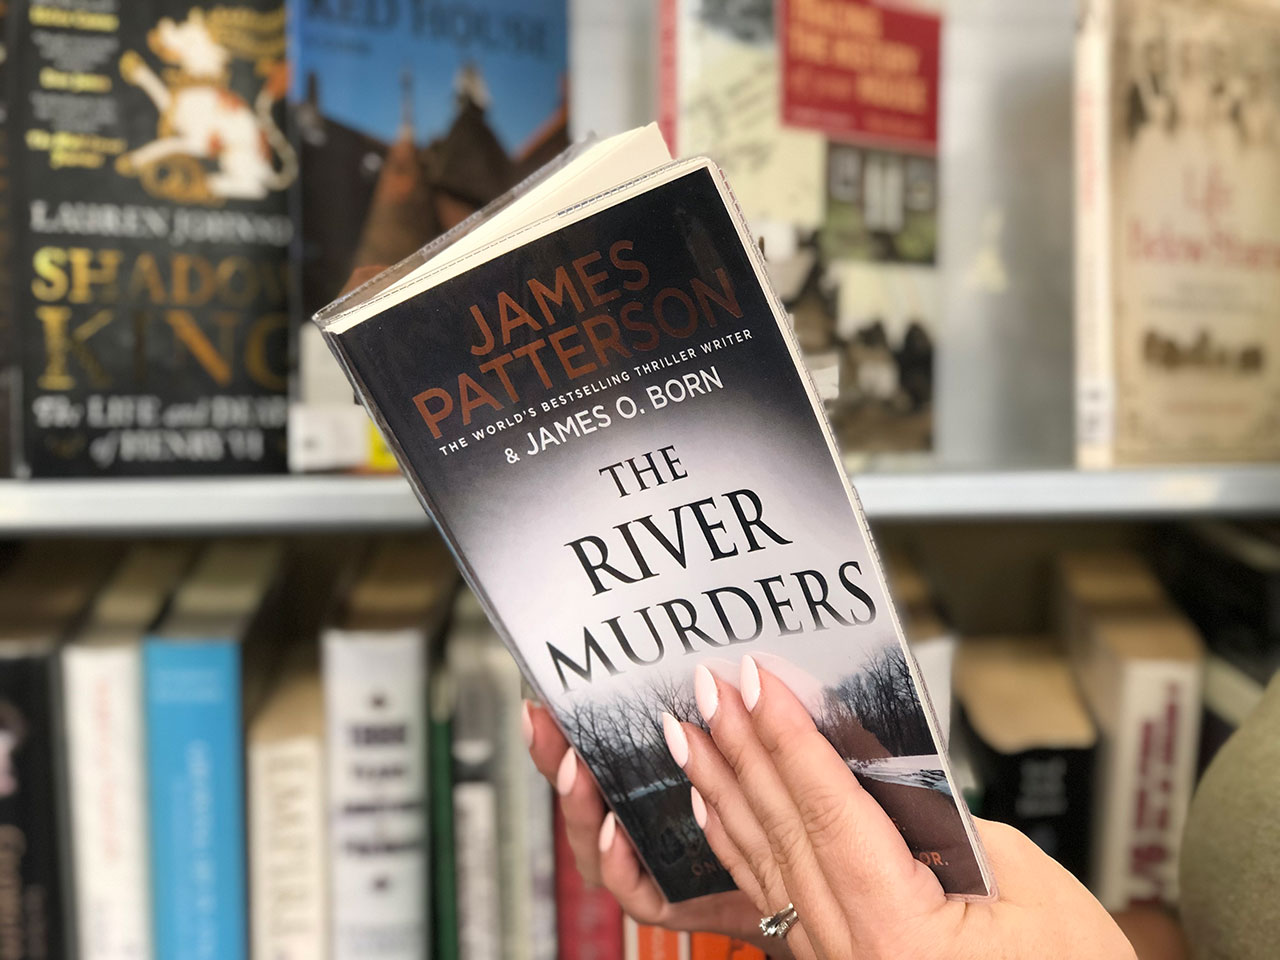 pic with hands holding James Patterson book